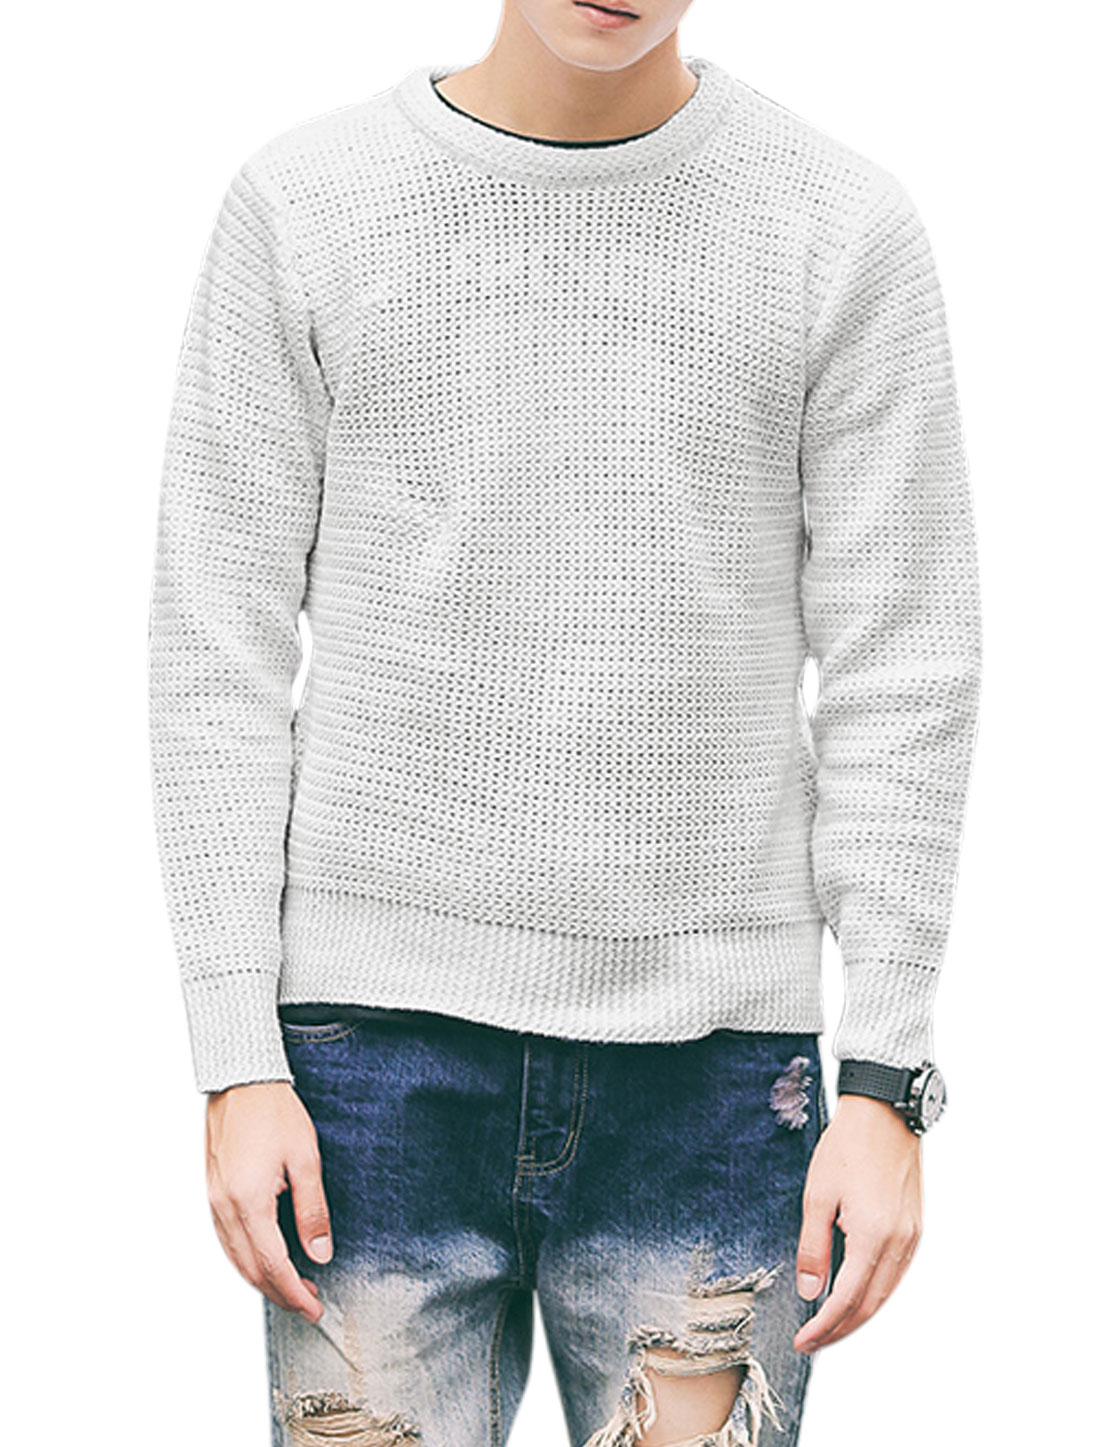 Men Long Sleeve Round Neck Zipper Sides Casual Sweater Whites M